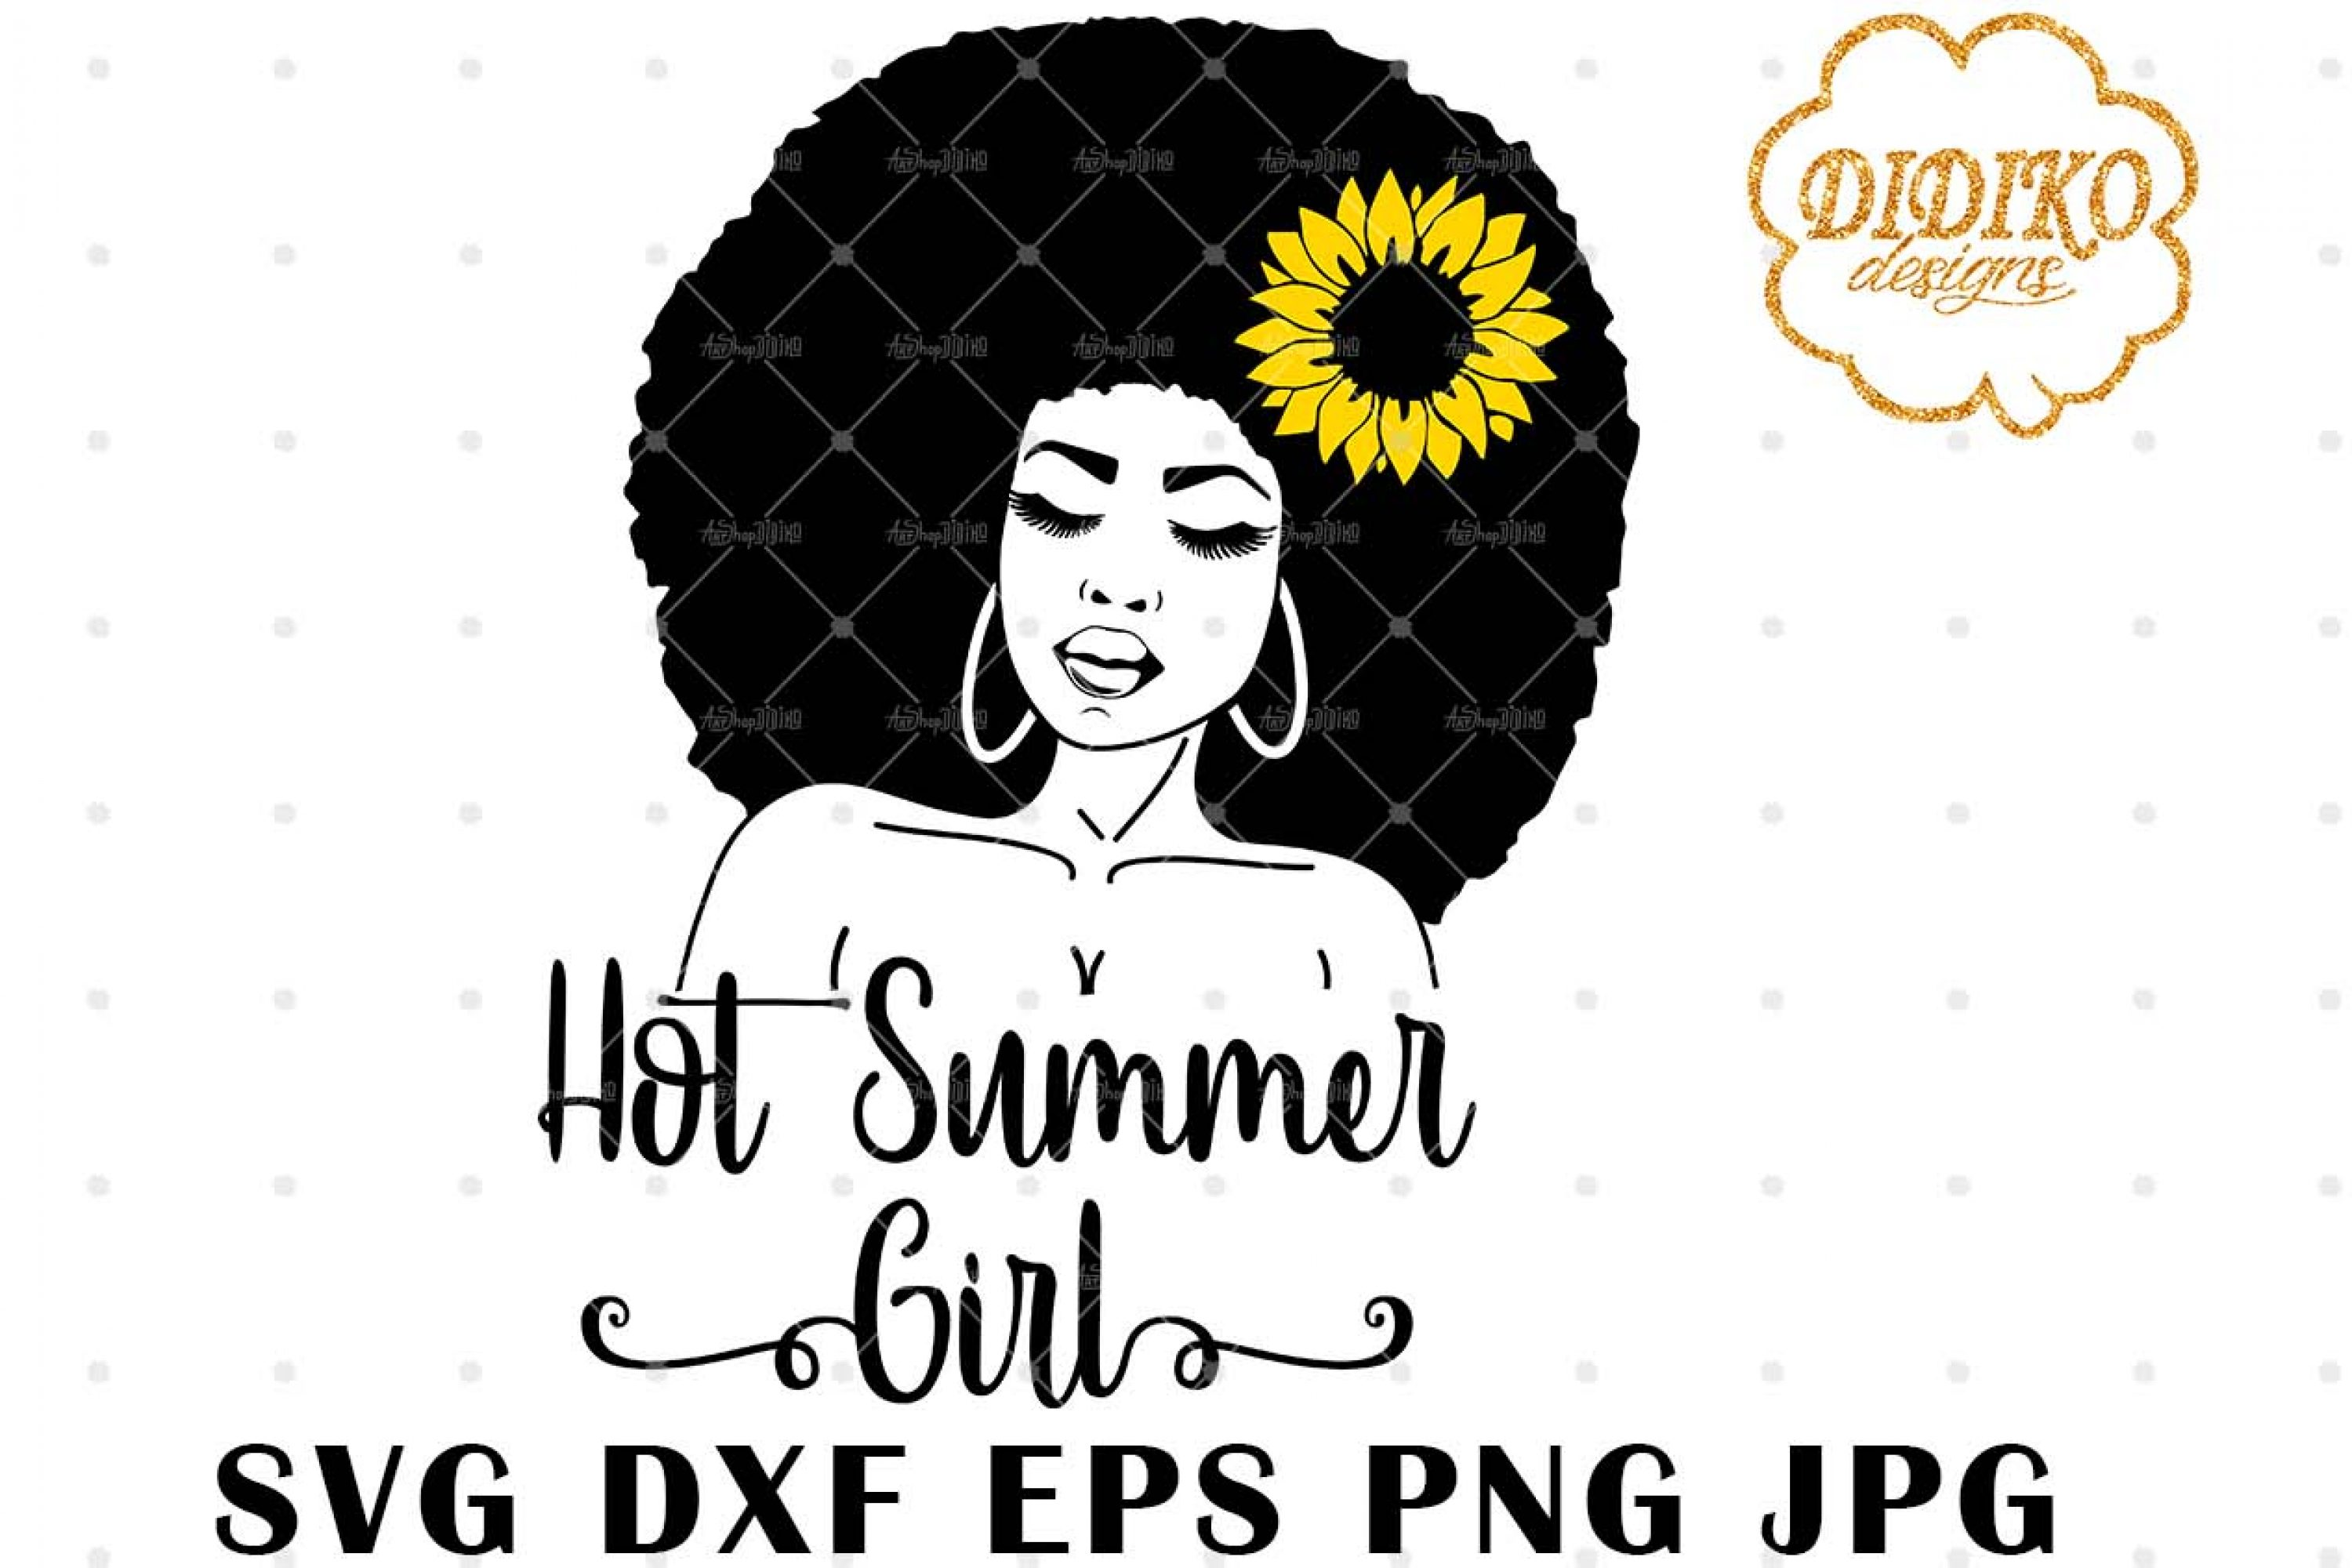 Hot Summer Girl SVG, Africa American Woman SVG